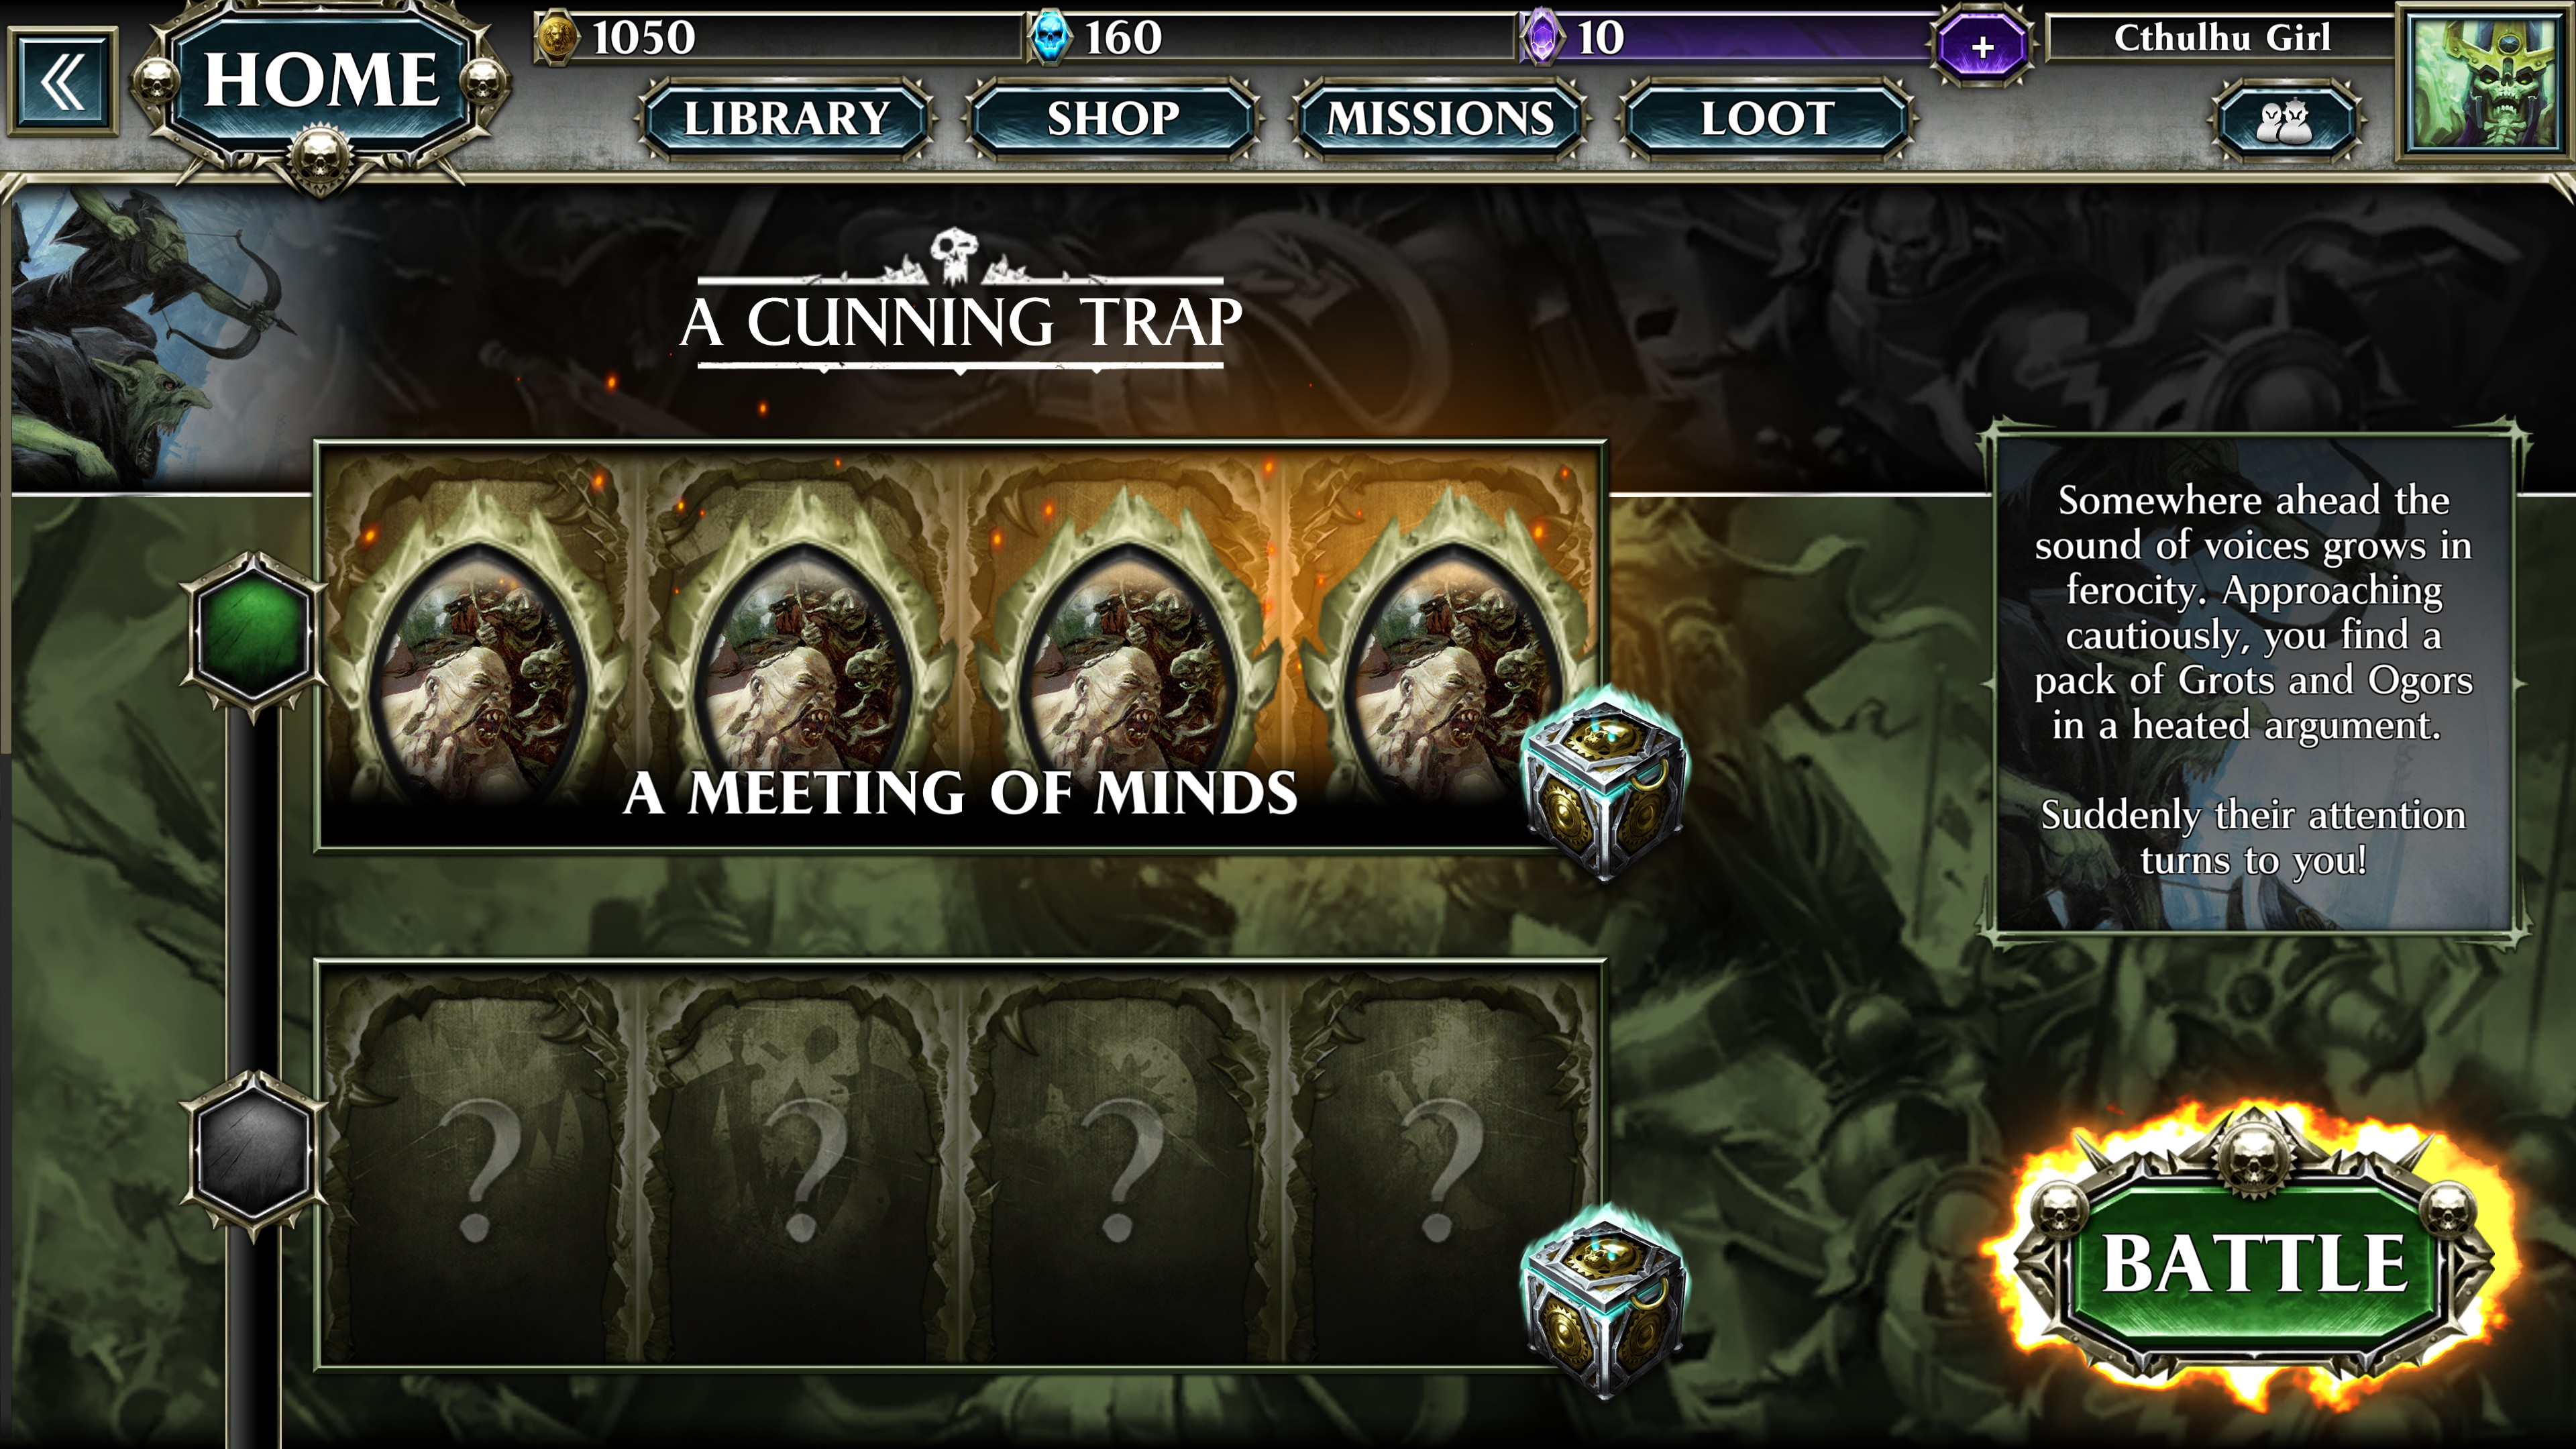 Solo battle called a cunning trap. first match is called a meeting of minds. Flavor text states: somewhere ahead the sound of voices grows in ferocity. approaching cautiously, you  find a pack of grots and ogors in a heated argument. suddenly their attention turns to you!